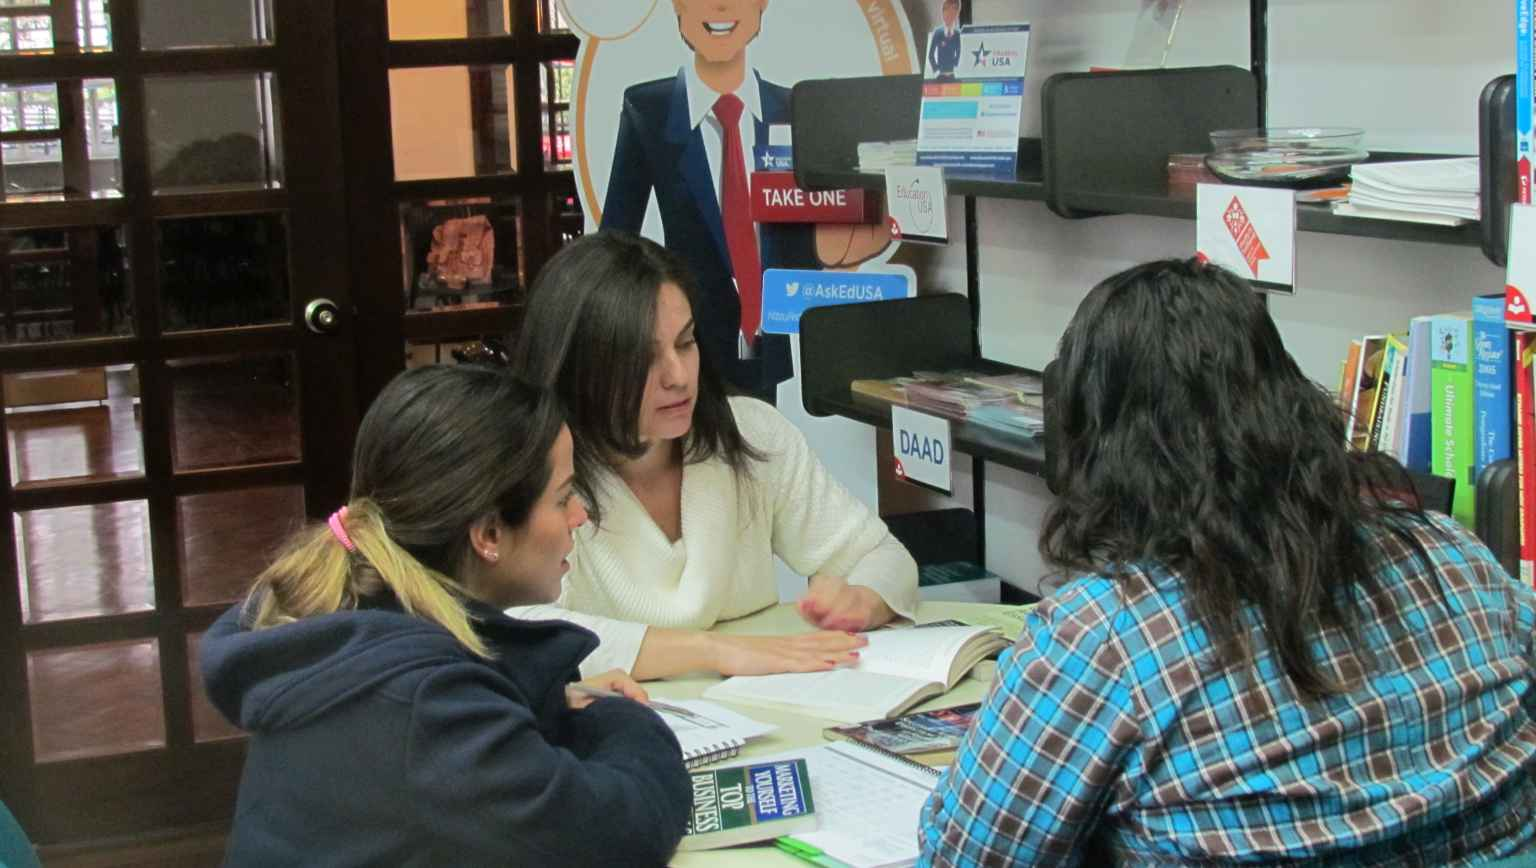 EducationUSA Colfuturo Advising Center for international students